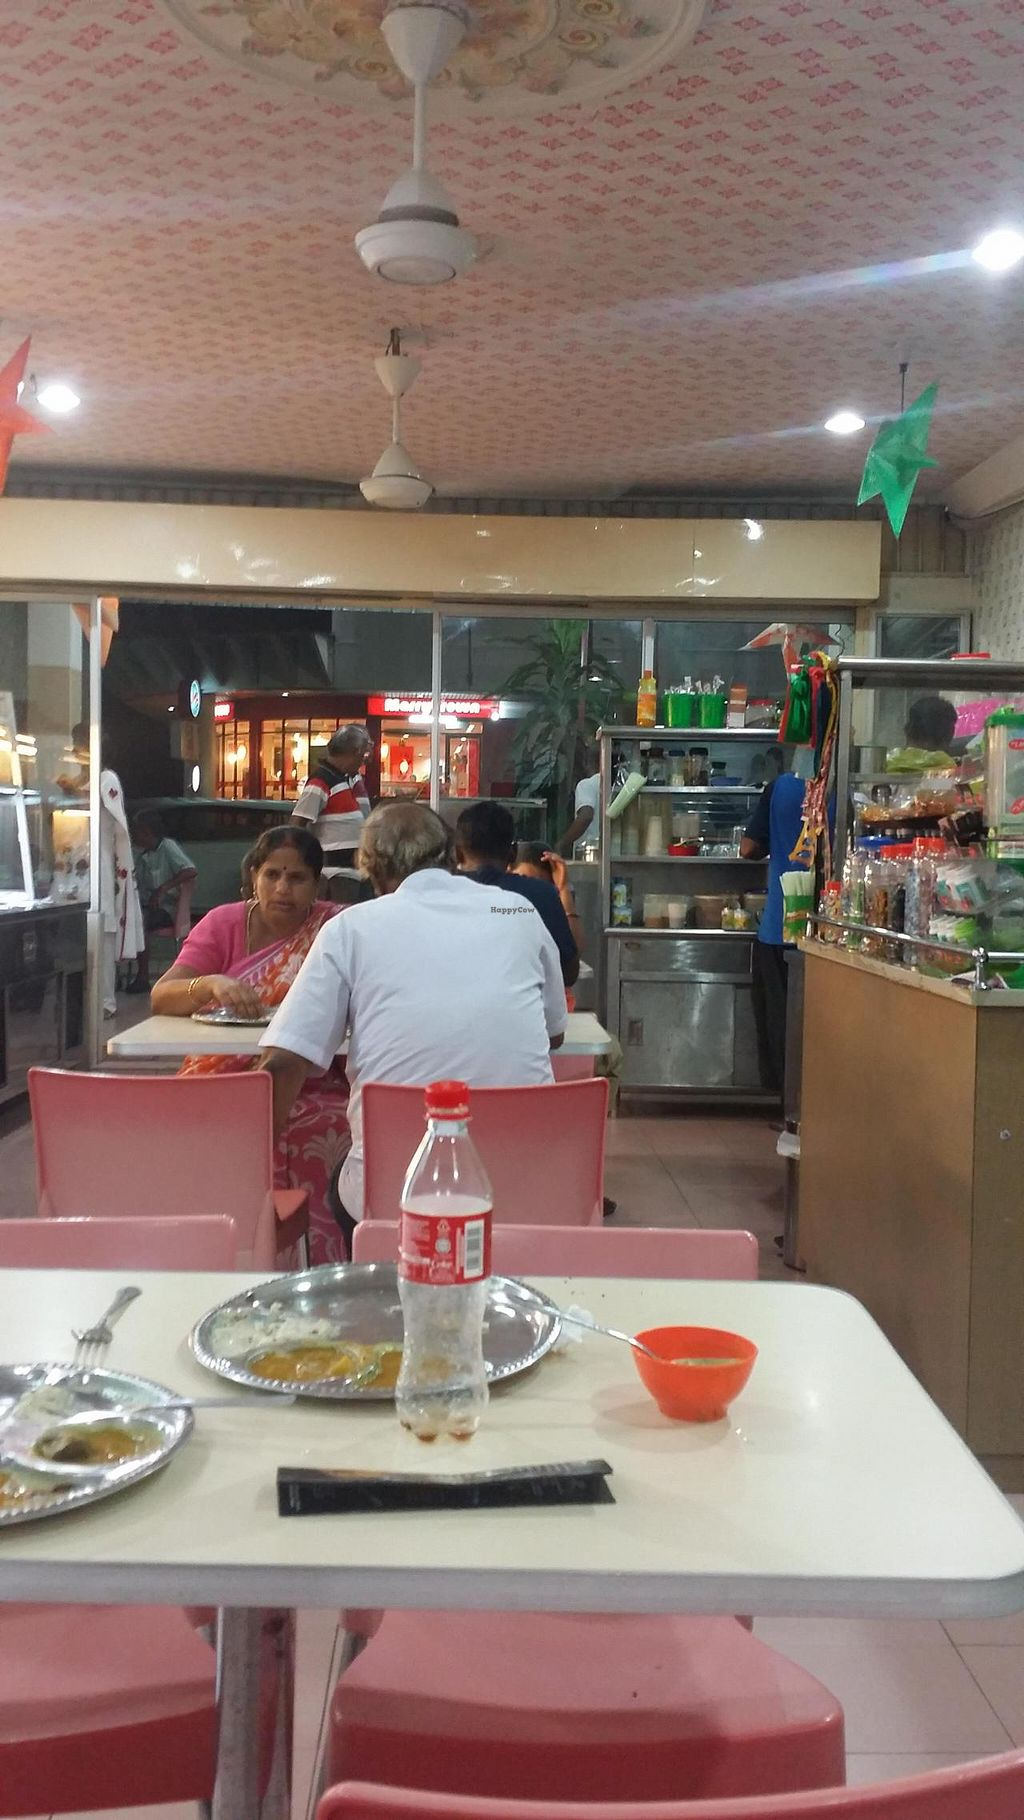 """Photo of Hotel Malaysia Restaurant  by <a href=""""/members/profile/walter007"""">walter007</a> <br/>Shop <br/> July 30, 2014  - <a href='/contact/abuse/image/49125/75548'>Report</a>"""